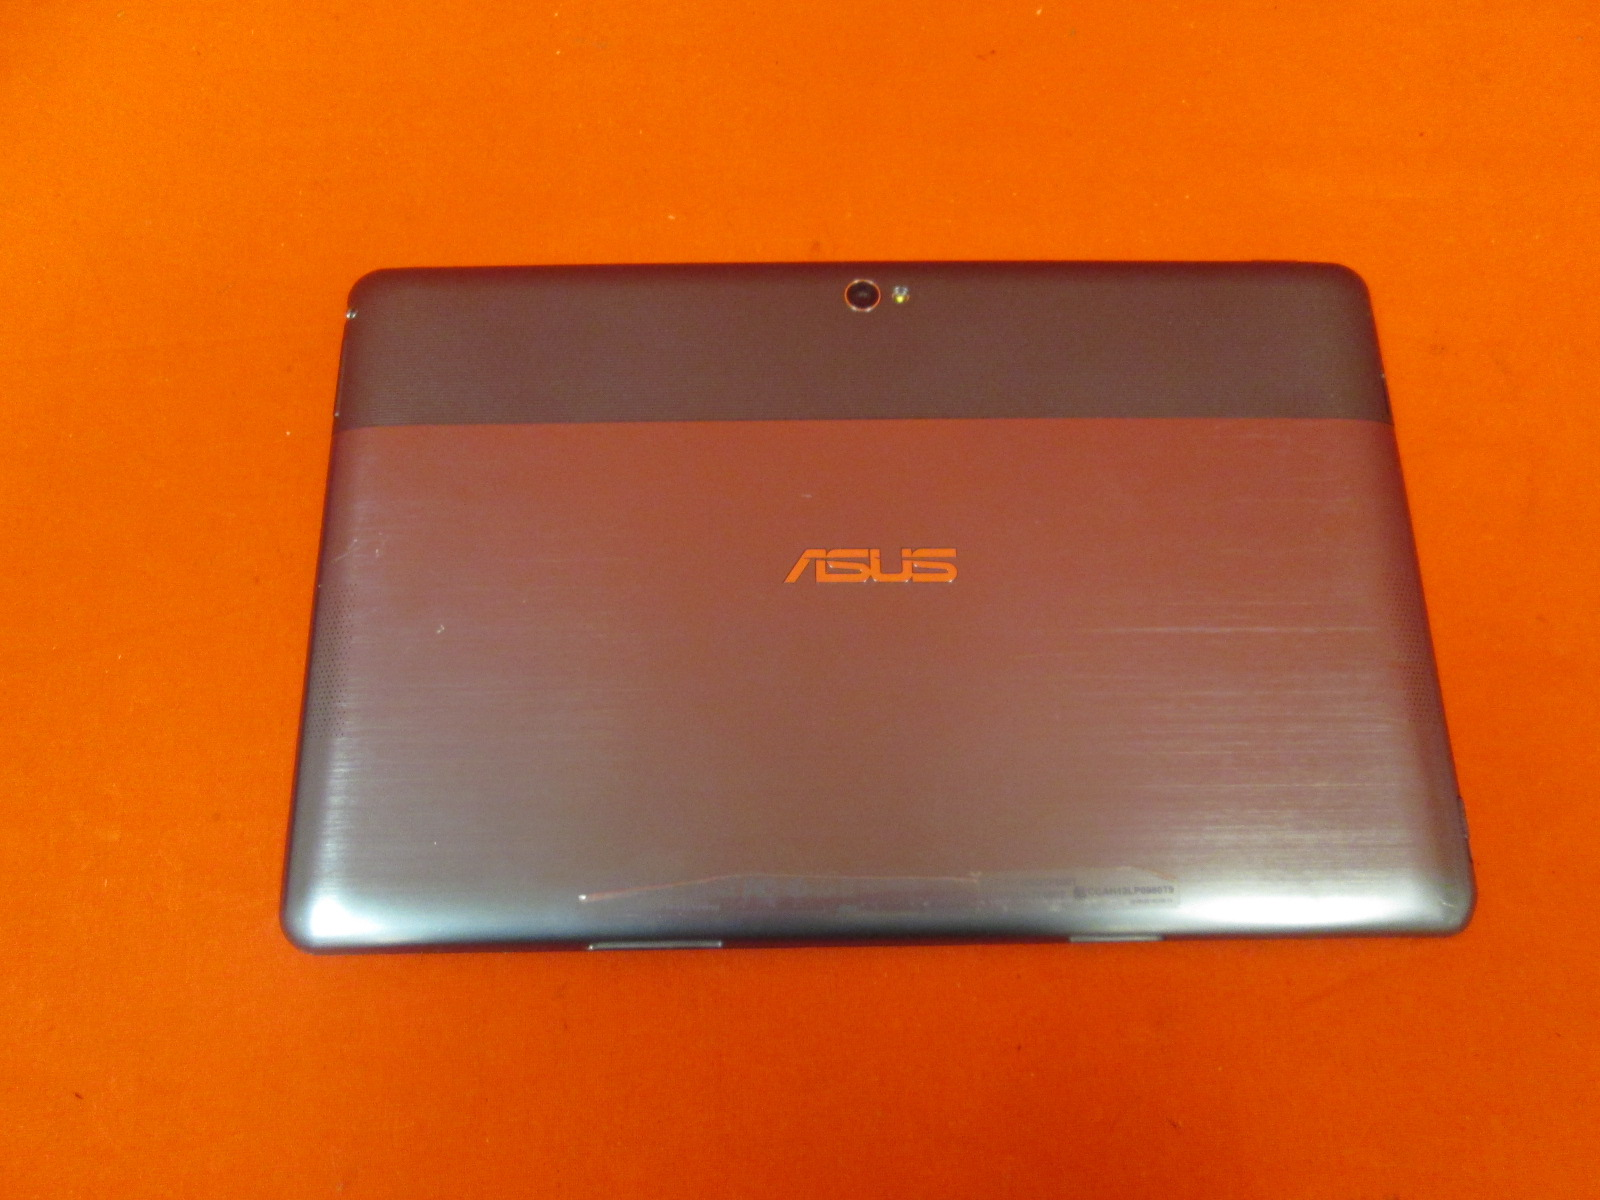 Image 1 of ASUS Vivotab RT TF600T-B1-GR 10.1-inch 32 GB Tablet Gray With Mobile